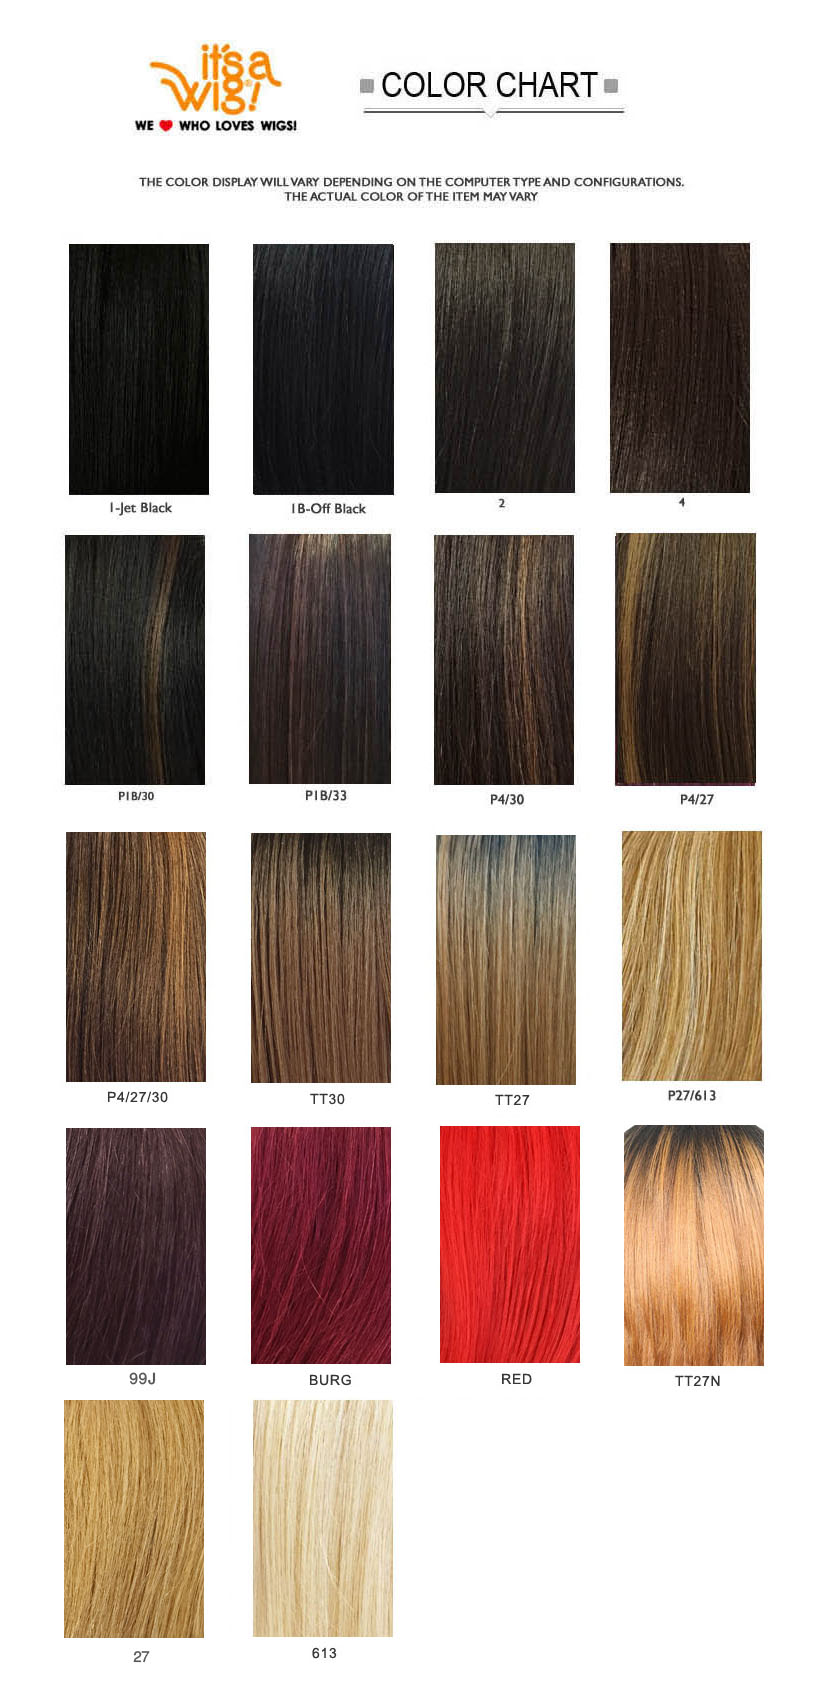 IT'S A WIG HAIR COLOR CHART